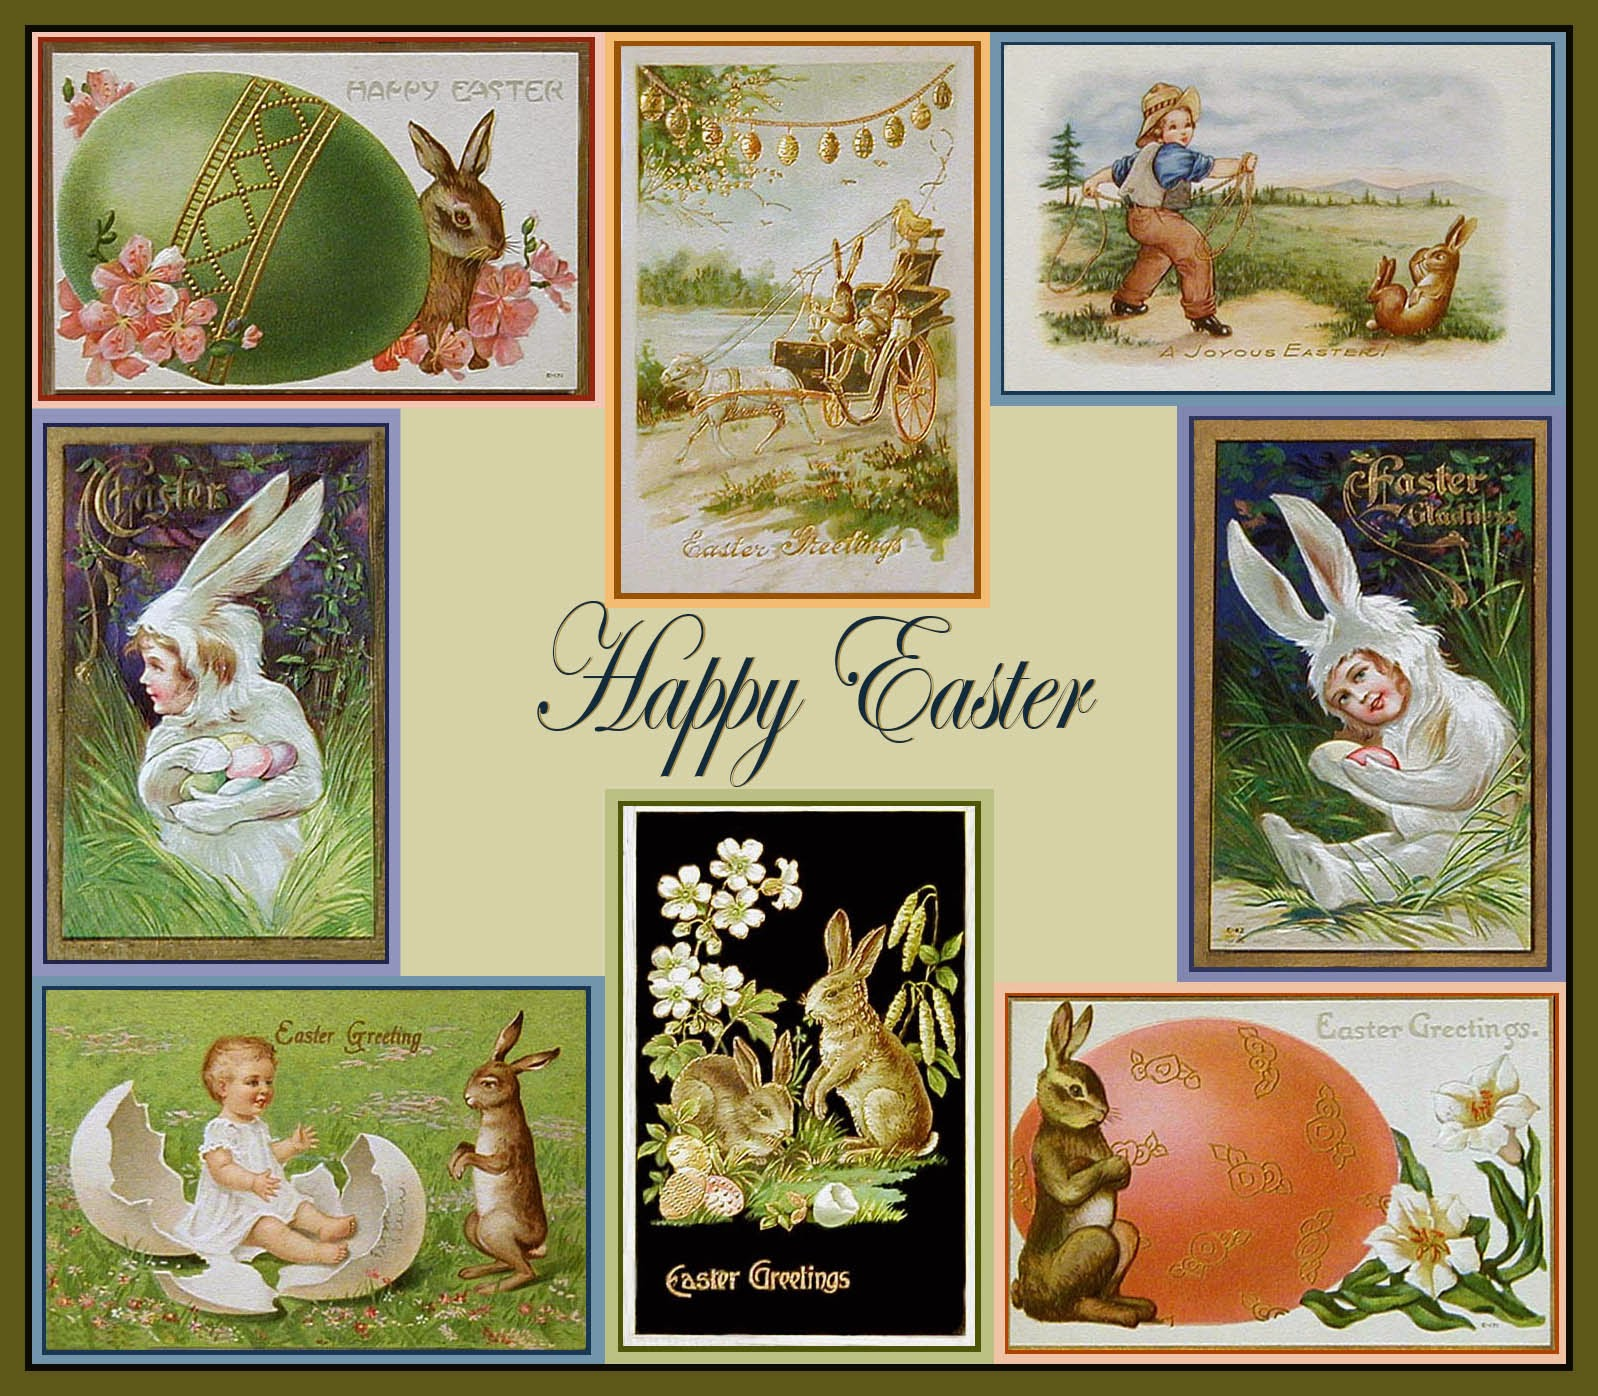 https://sites.google.com/a/reuzeitmn.com/reuzeitmn/post-cards/holiday/easter